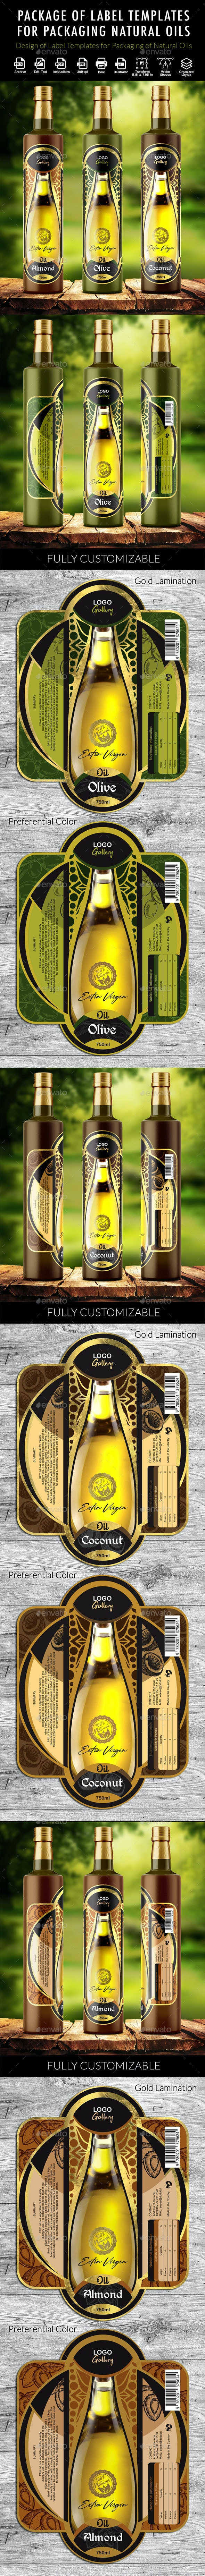 Design of Label Templates for Packaging of Natural Oils - Packaging Print Templates